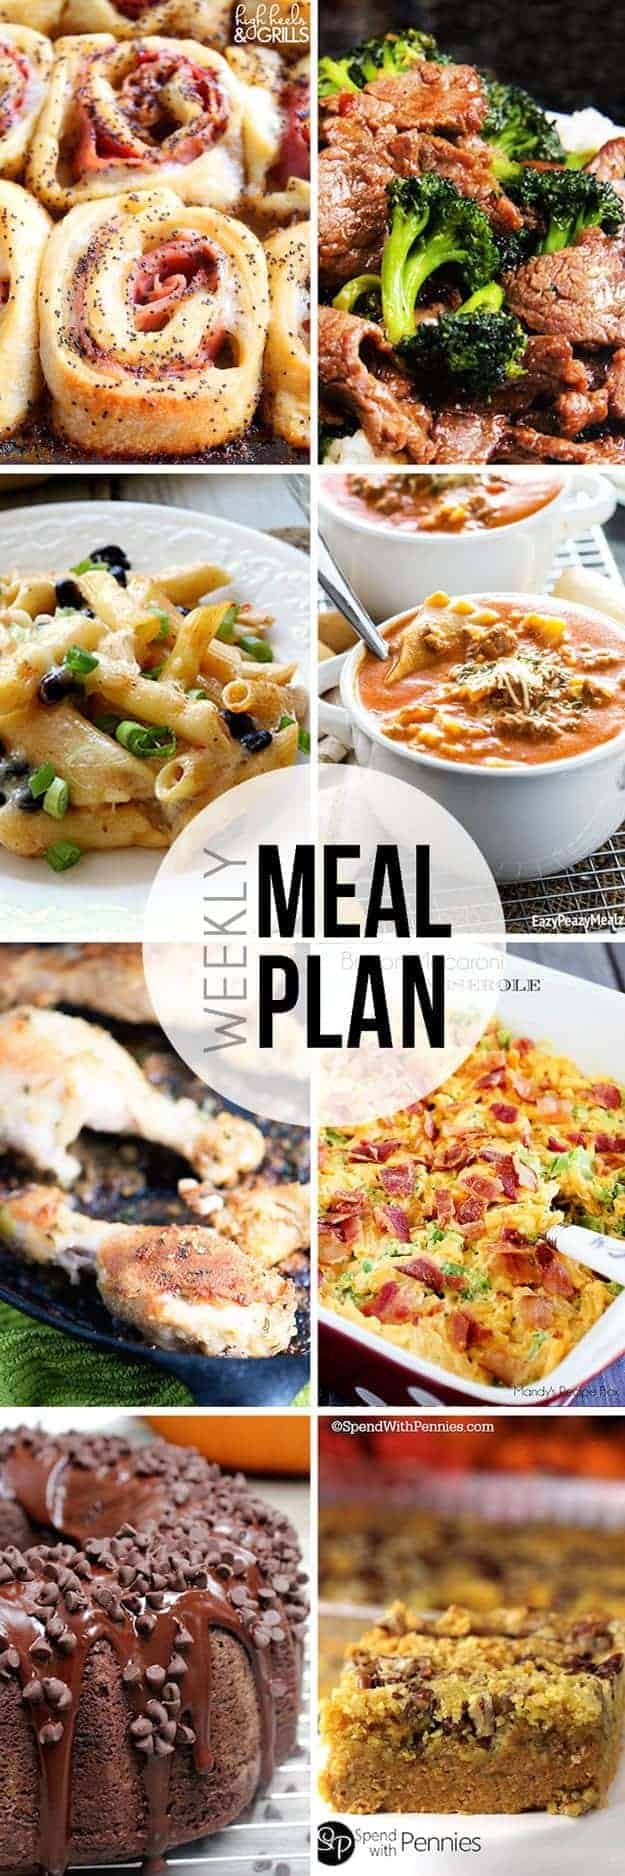 Easy weeknight meals all in one place!